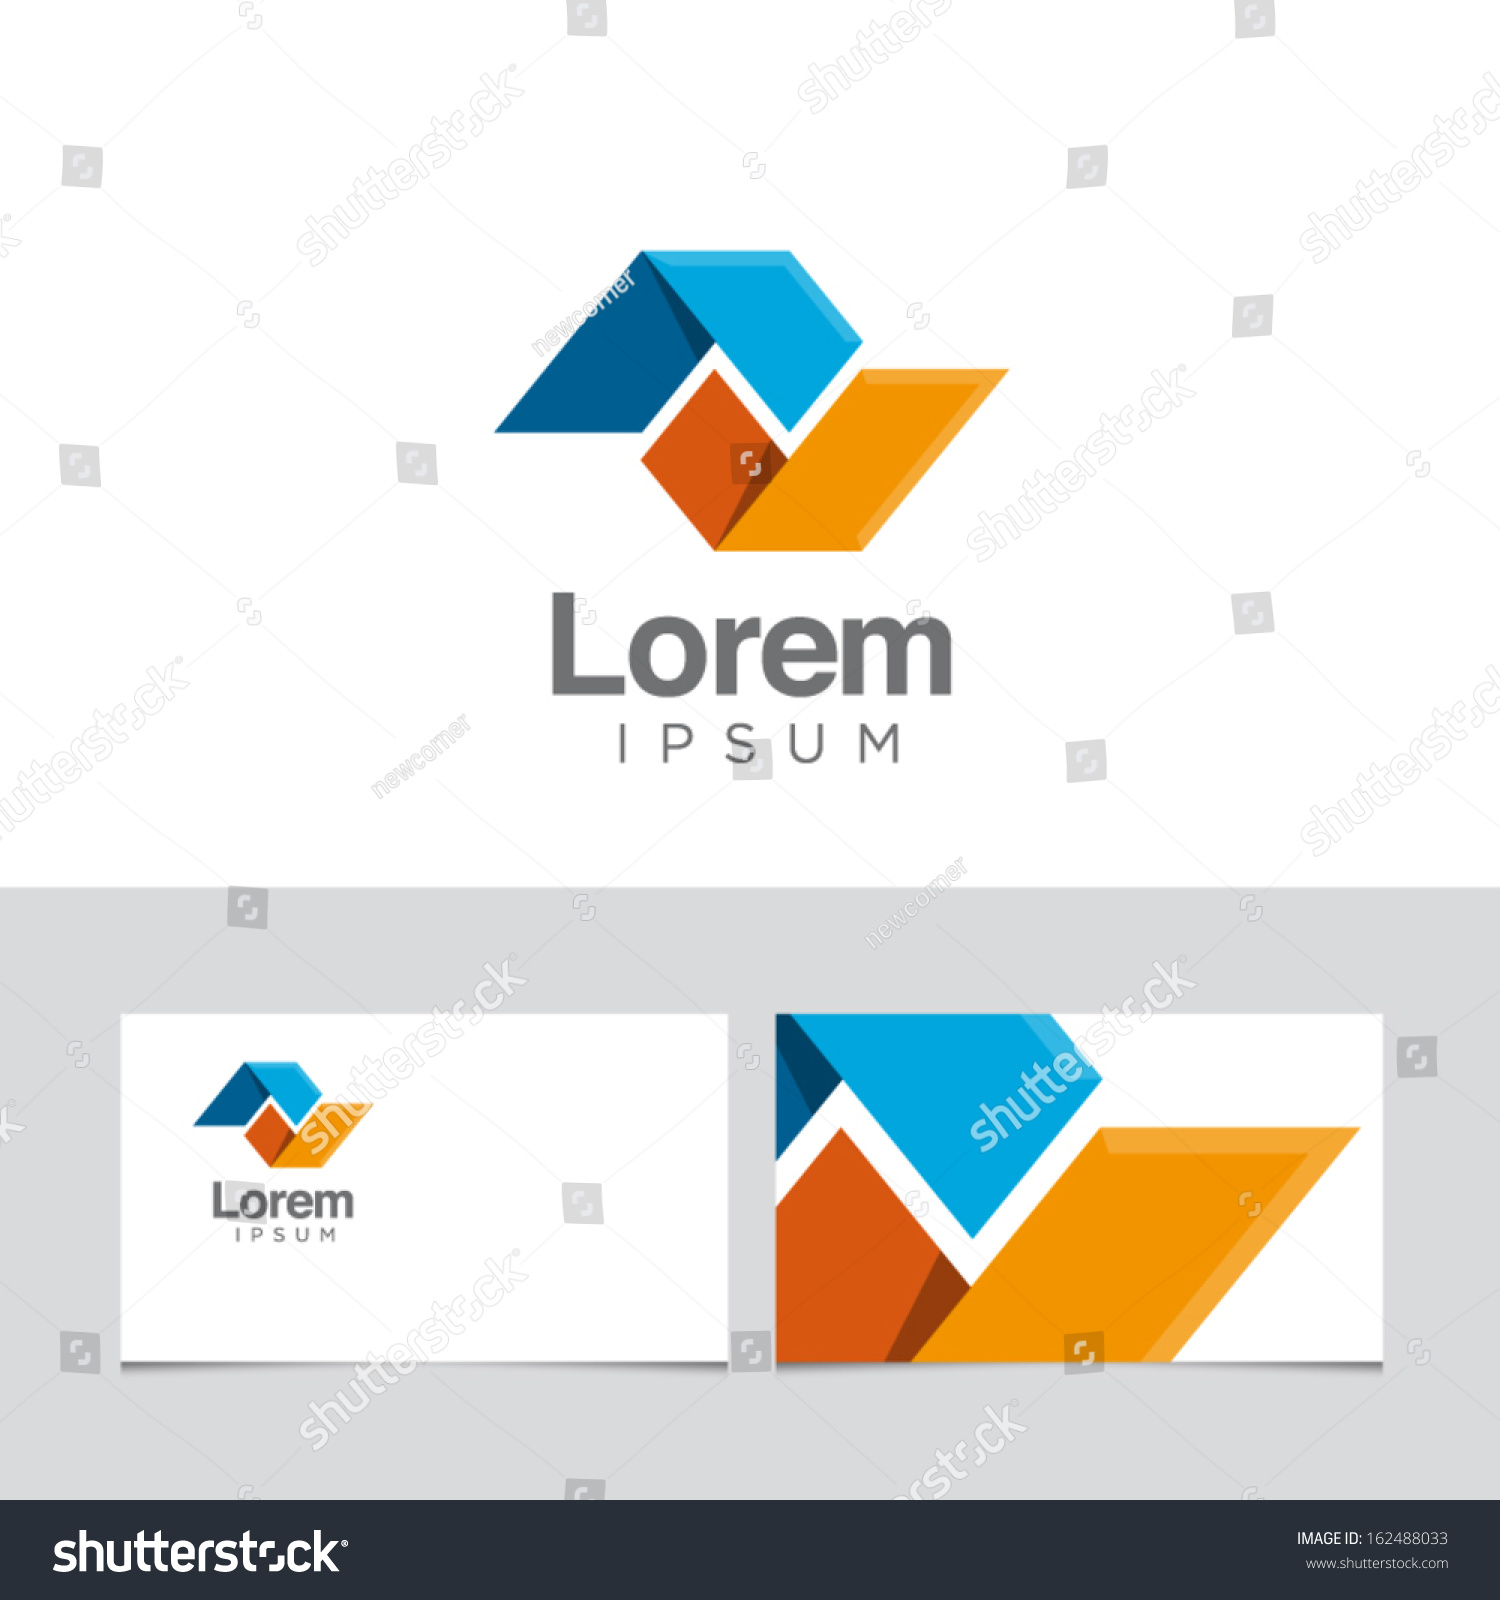 icon design element business card template stock vector 162488033 shutterstock. Black Bedroom Furniture Sets. Home Design Ideas